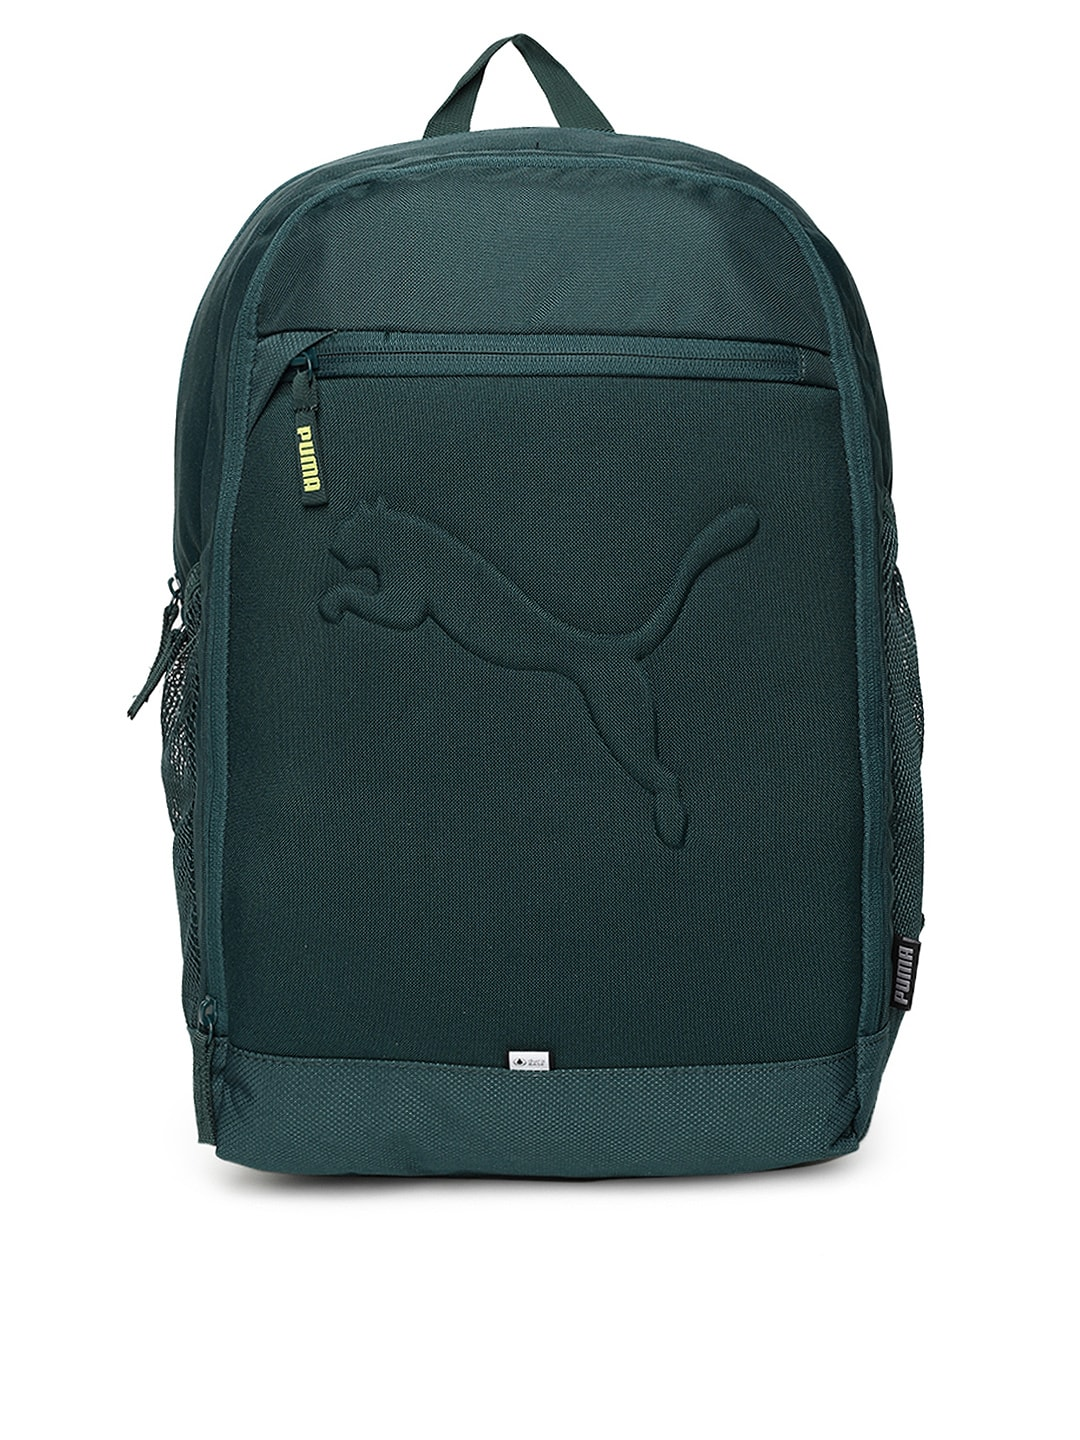 30542594cc91 Puma Backpacks Sweatshirts Bags Jackets - Buy Puma Backpacks Sweatshirts  Bags Jackets online in India